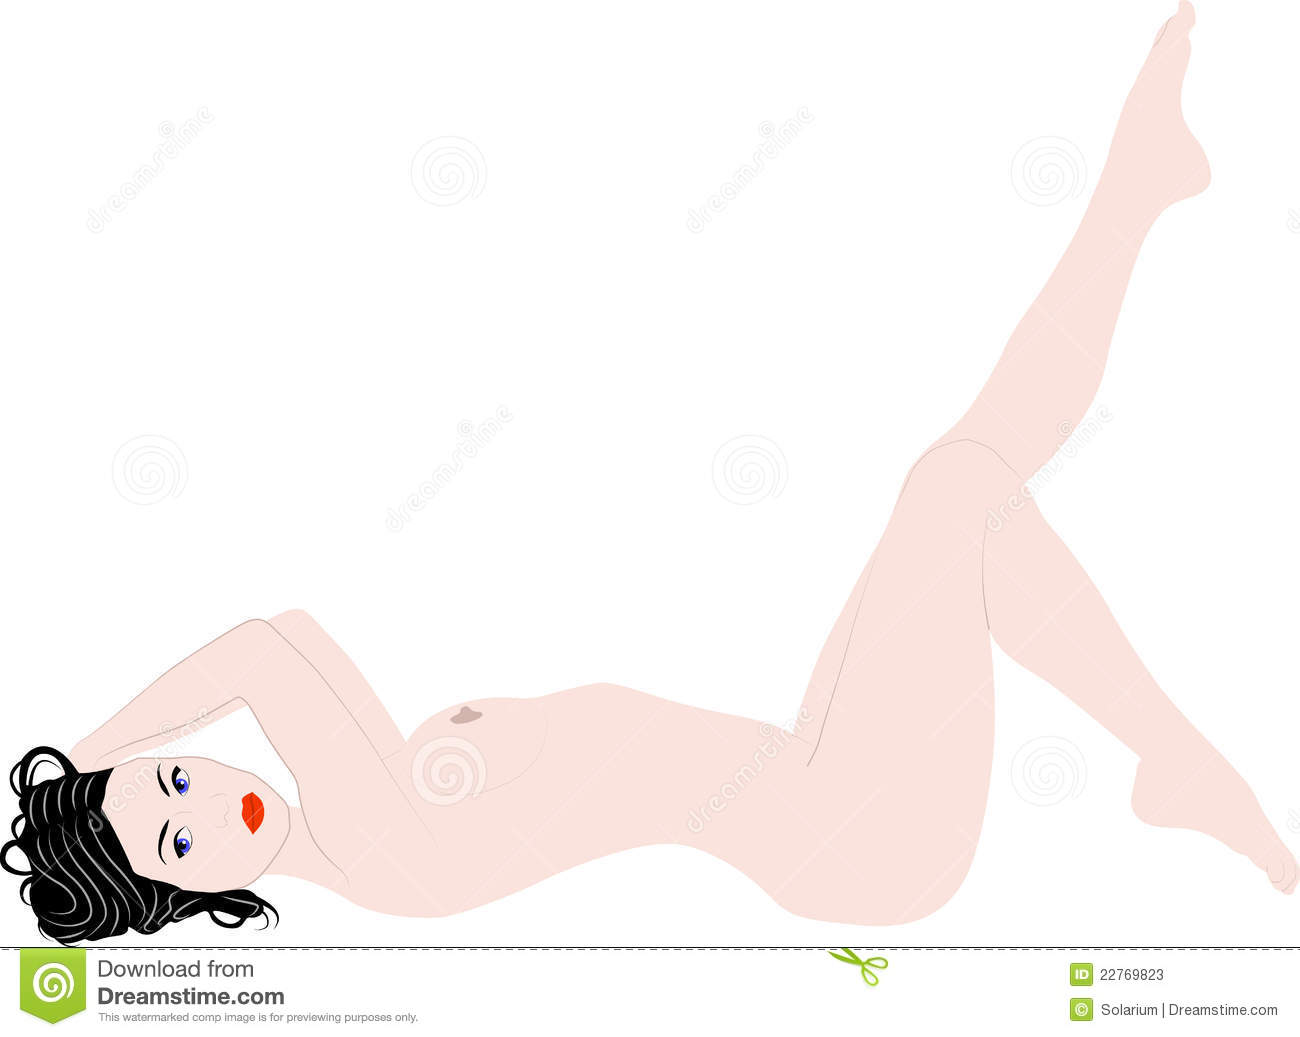 Naked woman stock vector. Illustration of naked, drawings ...